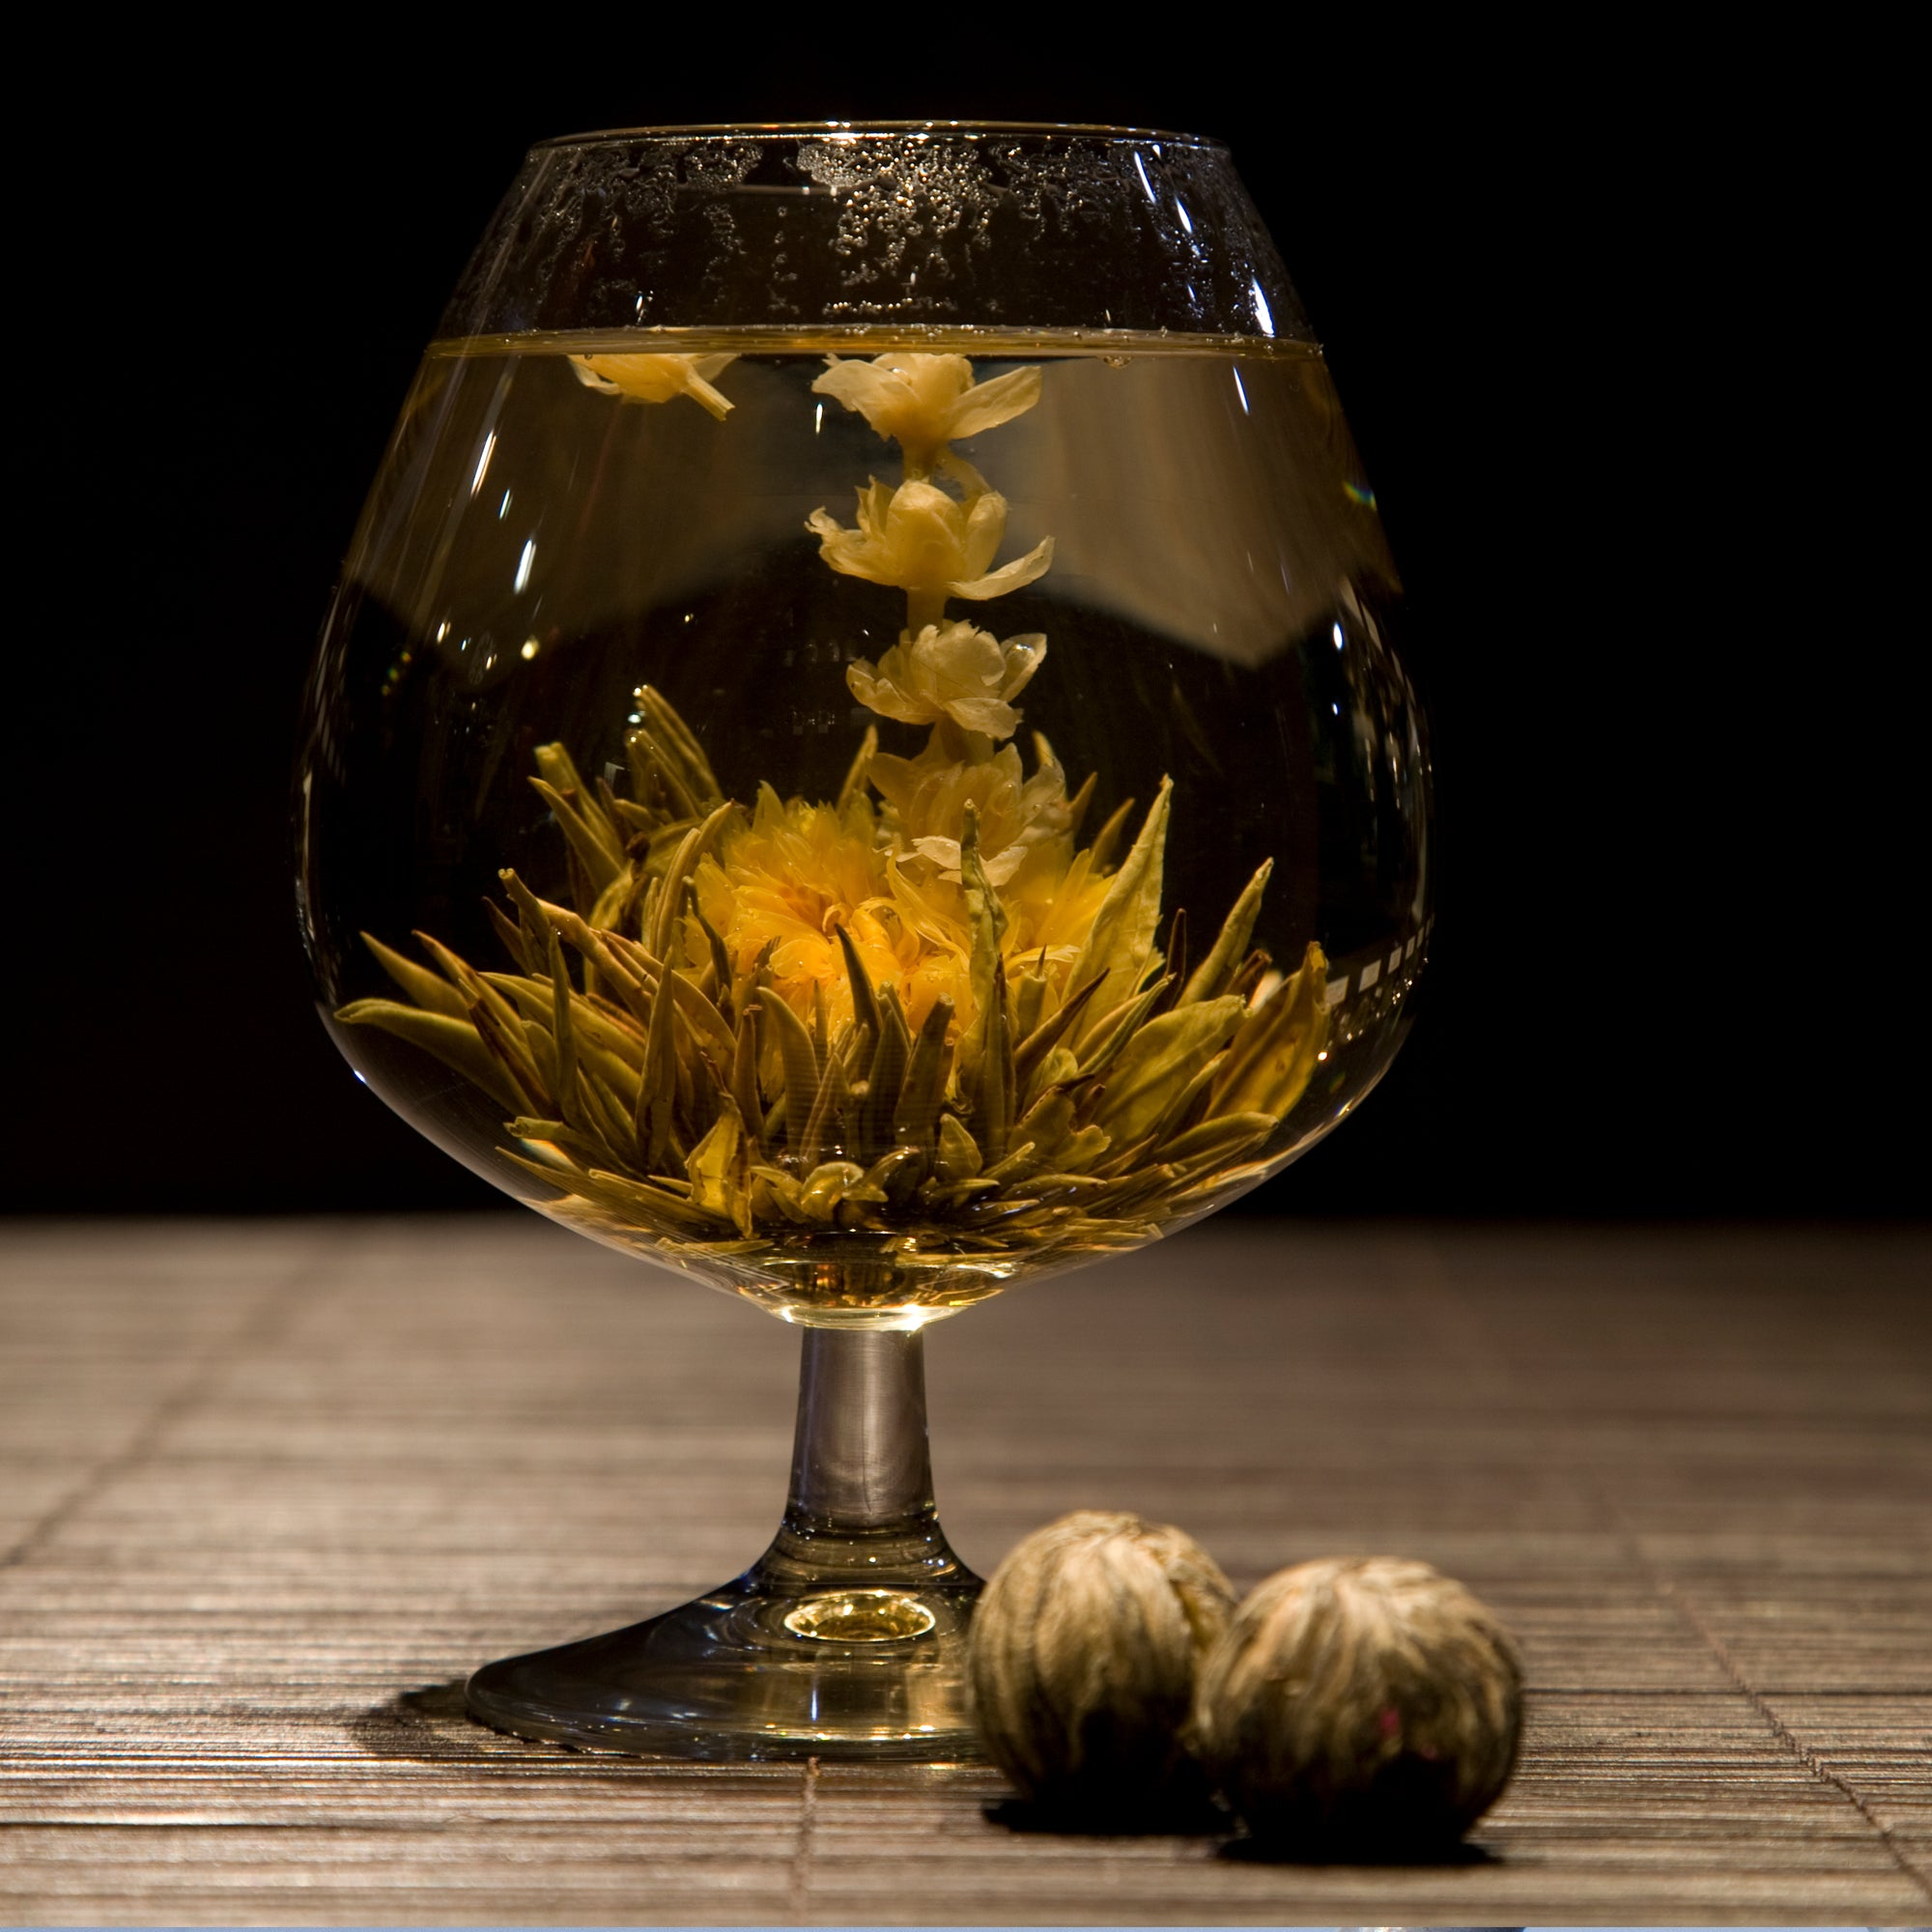 Hand-Tied Flowering Tea - Jasmine, Chrysanthmum and Green Tea